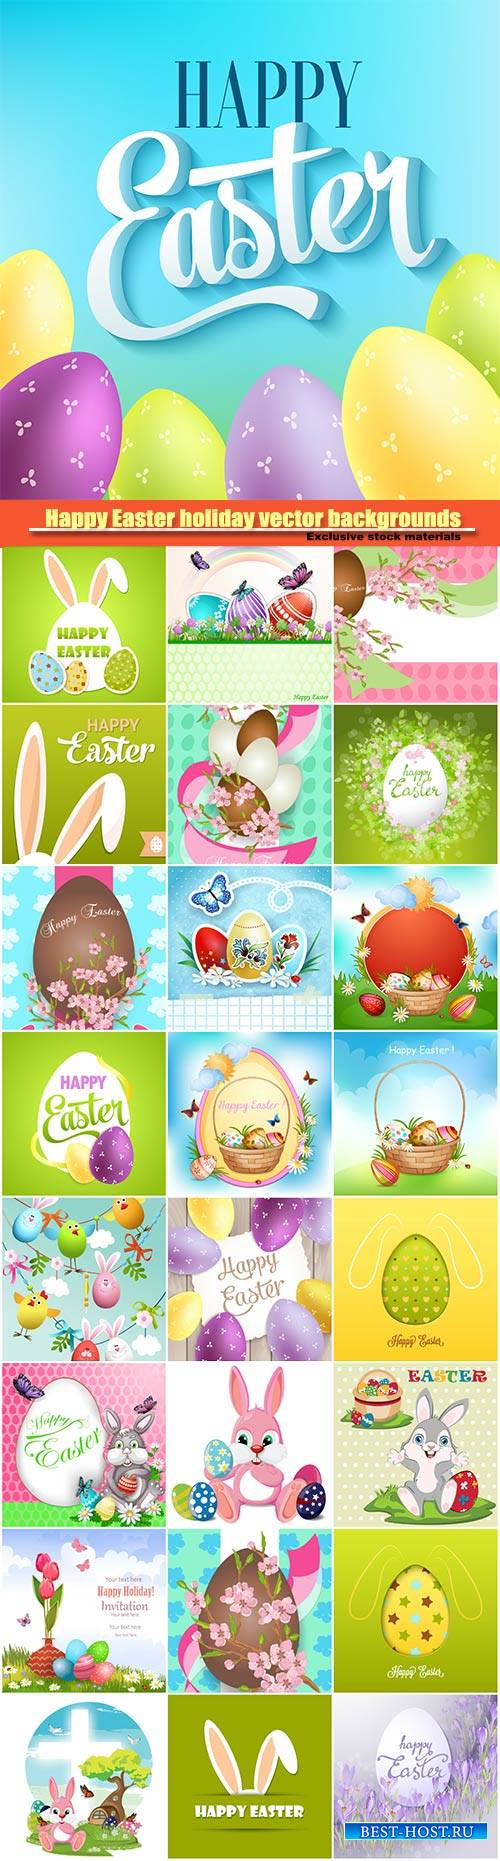 Happy Easter holiday vector backgrounds, Easter Eggs